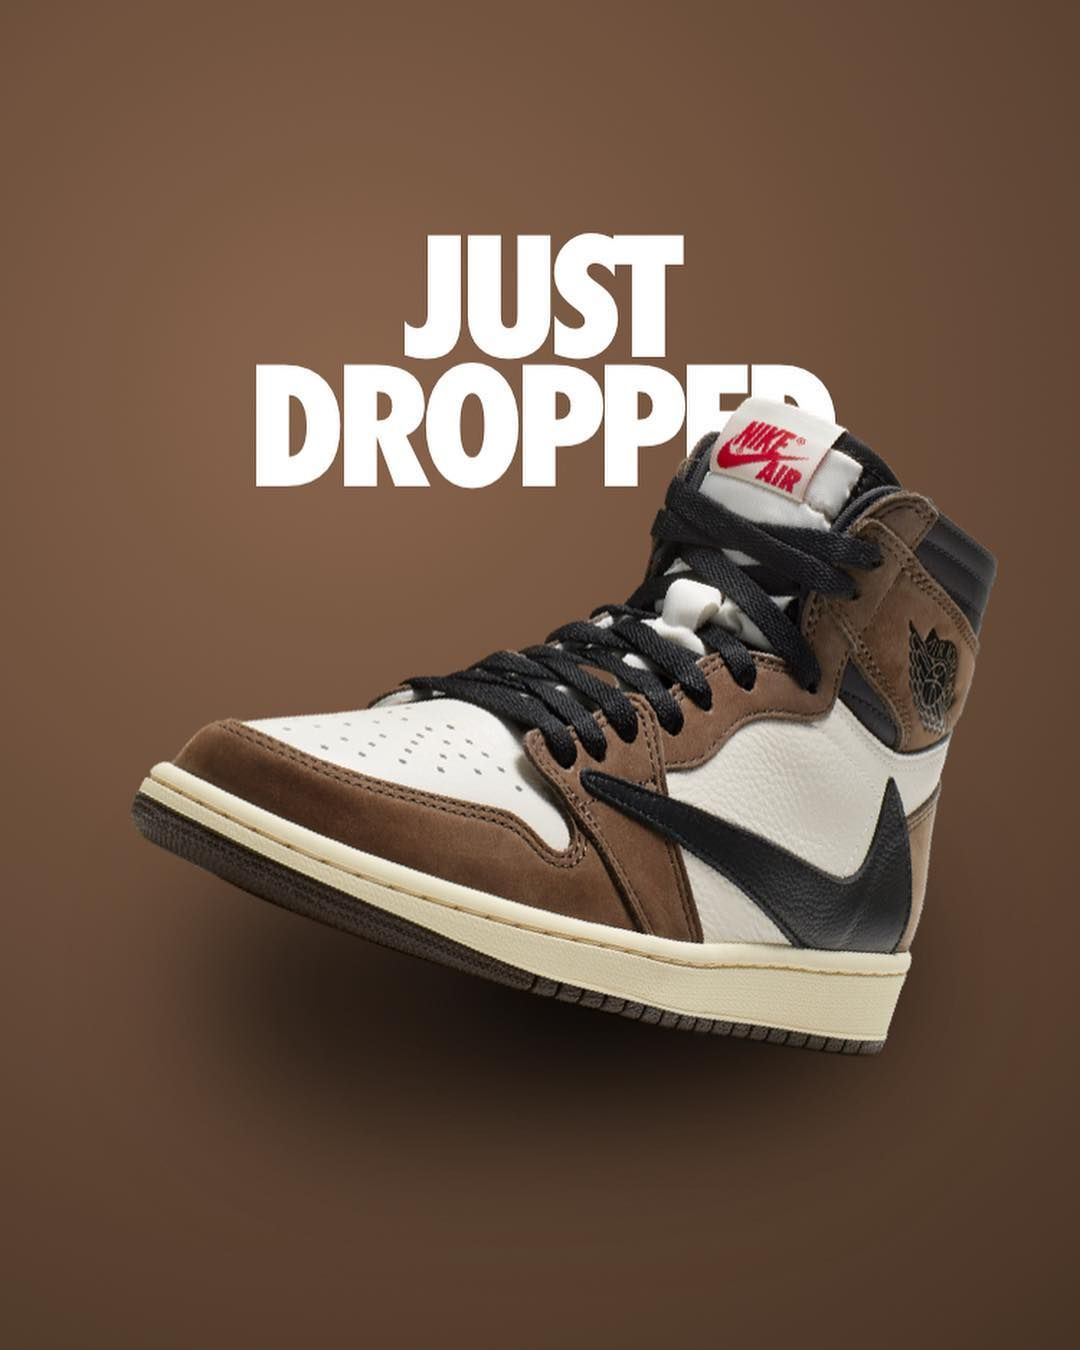 c81cb632ca0ff Who got em  Just Dropped on SNKRS  airjordan1  travisscott   airjordan1travisscott  airjordan1cactusjack  aj1  aj1travisscott…